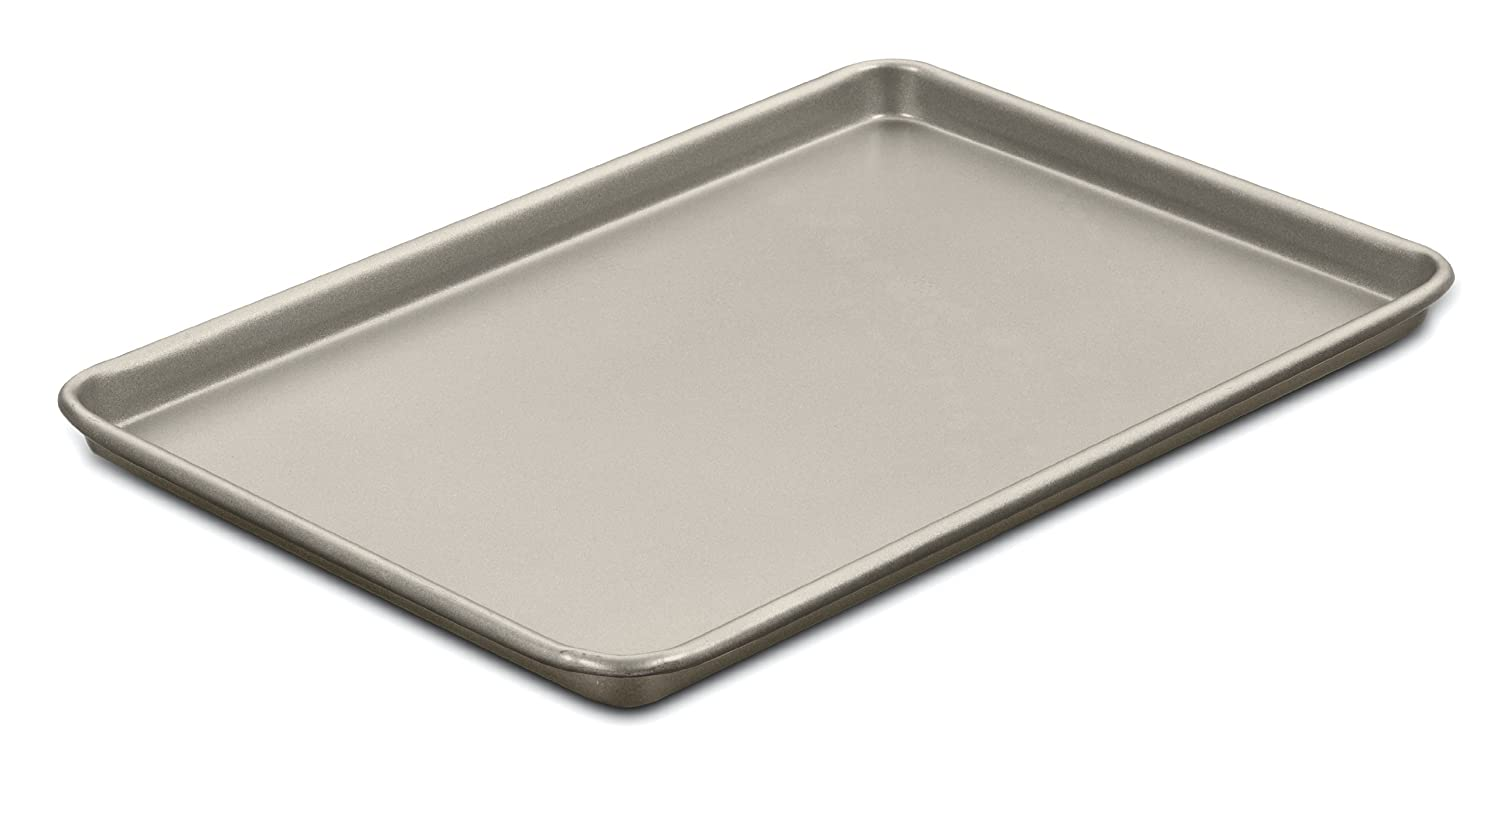 Cuisinart AMB-15BSCH Chef's Classic Nonstick Bakeware 15-Inch Baking Sheet, Champagne